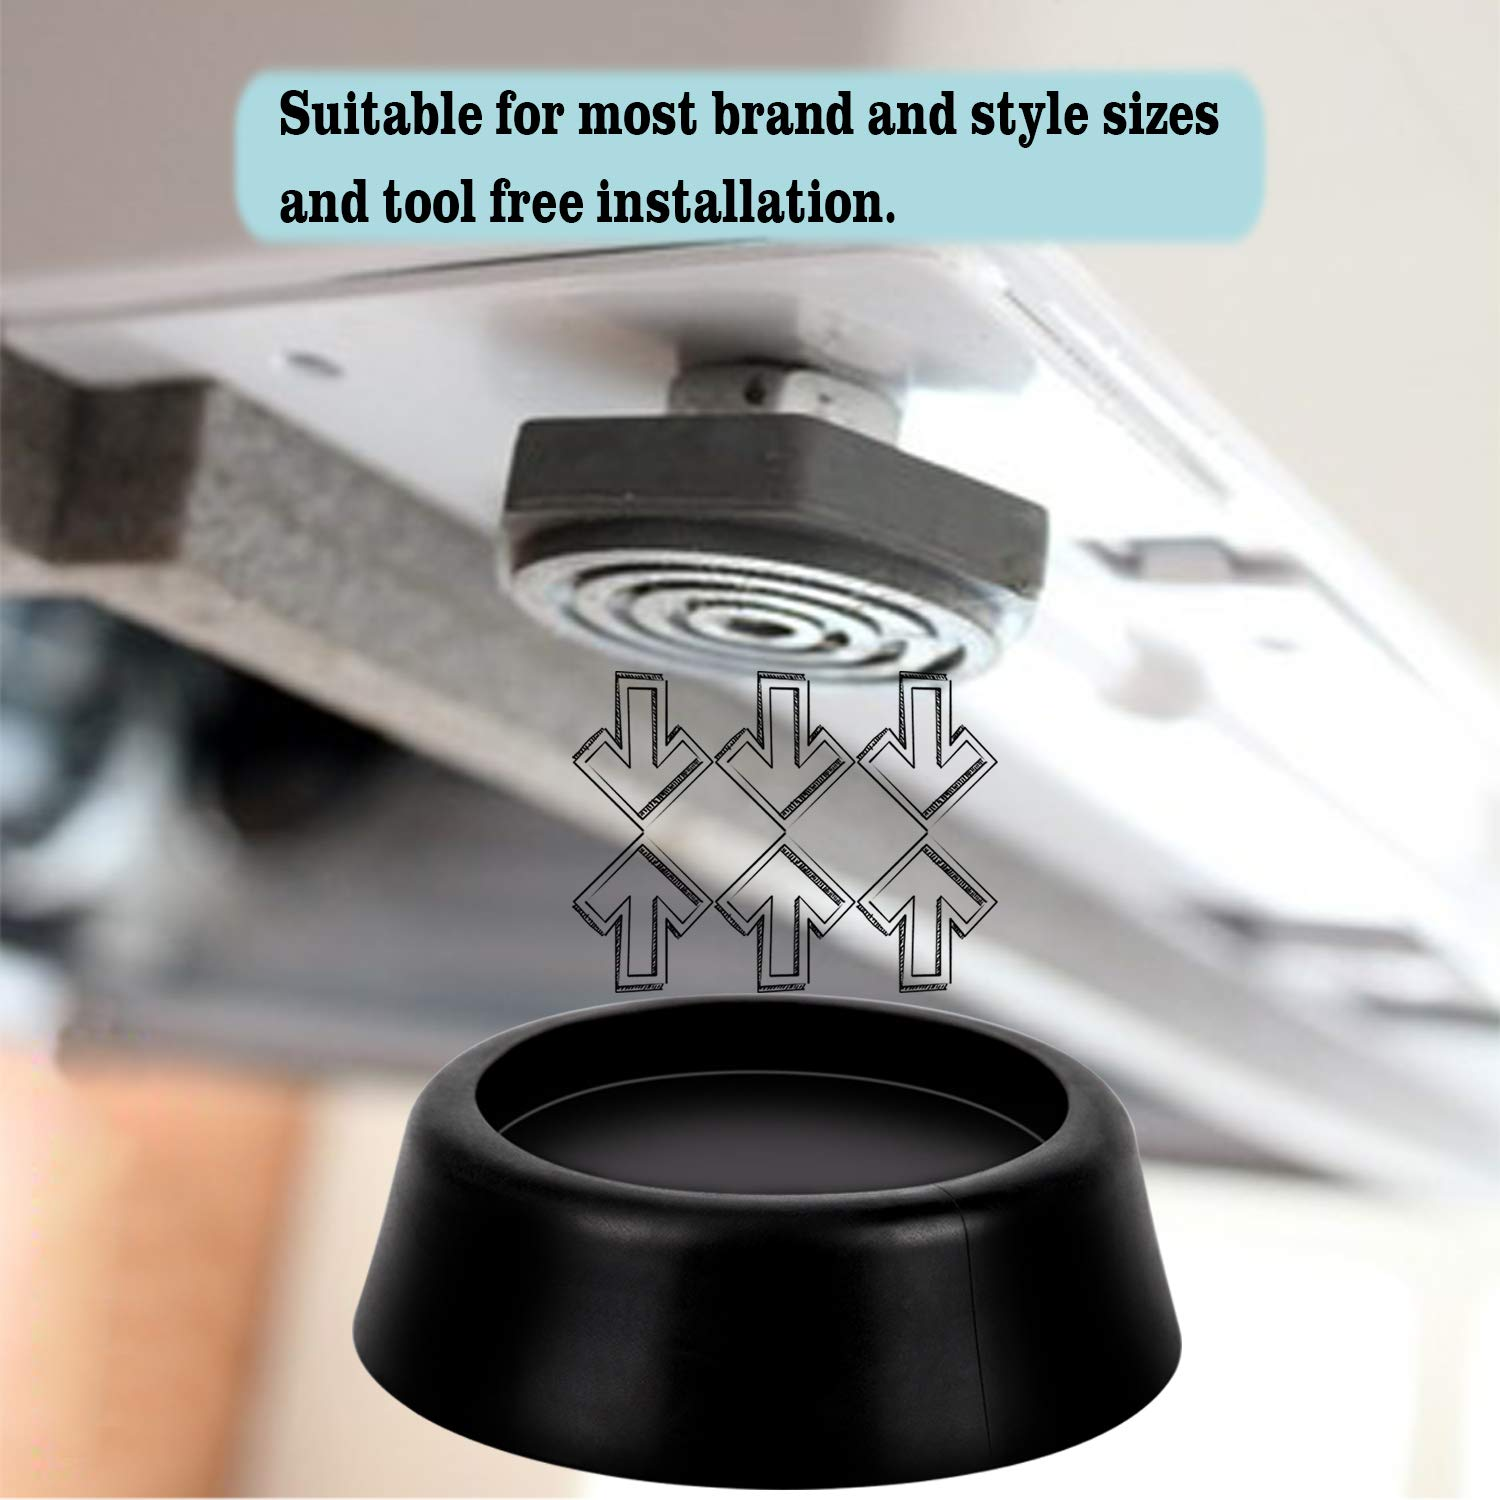 2 x Carbon Charcoal Filter for MOFFAT Cooker Hood Vent Extractor MCH660W MCH660X